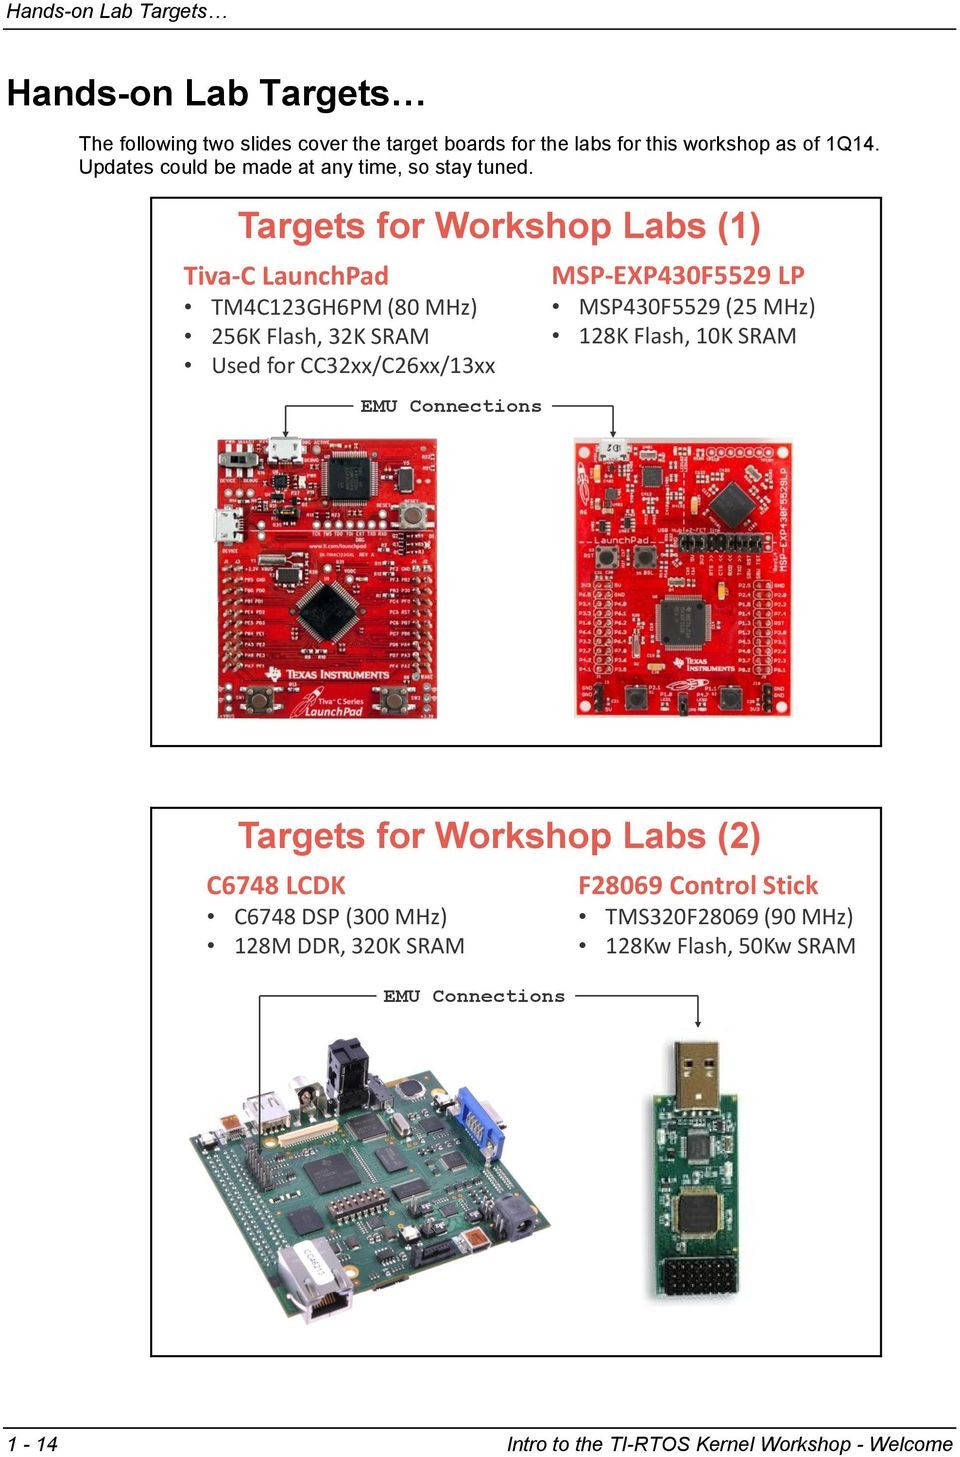 Intro To The Ti Rtos Kernel Workshop Pdf Combination Lock Using Msp430 Launchpad Circuit Targets For Labs 1 Tiva C Tm4c123gh6pm 80 Mhz